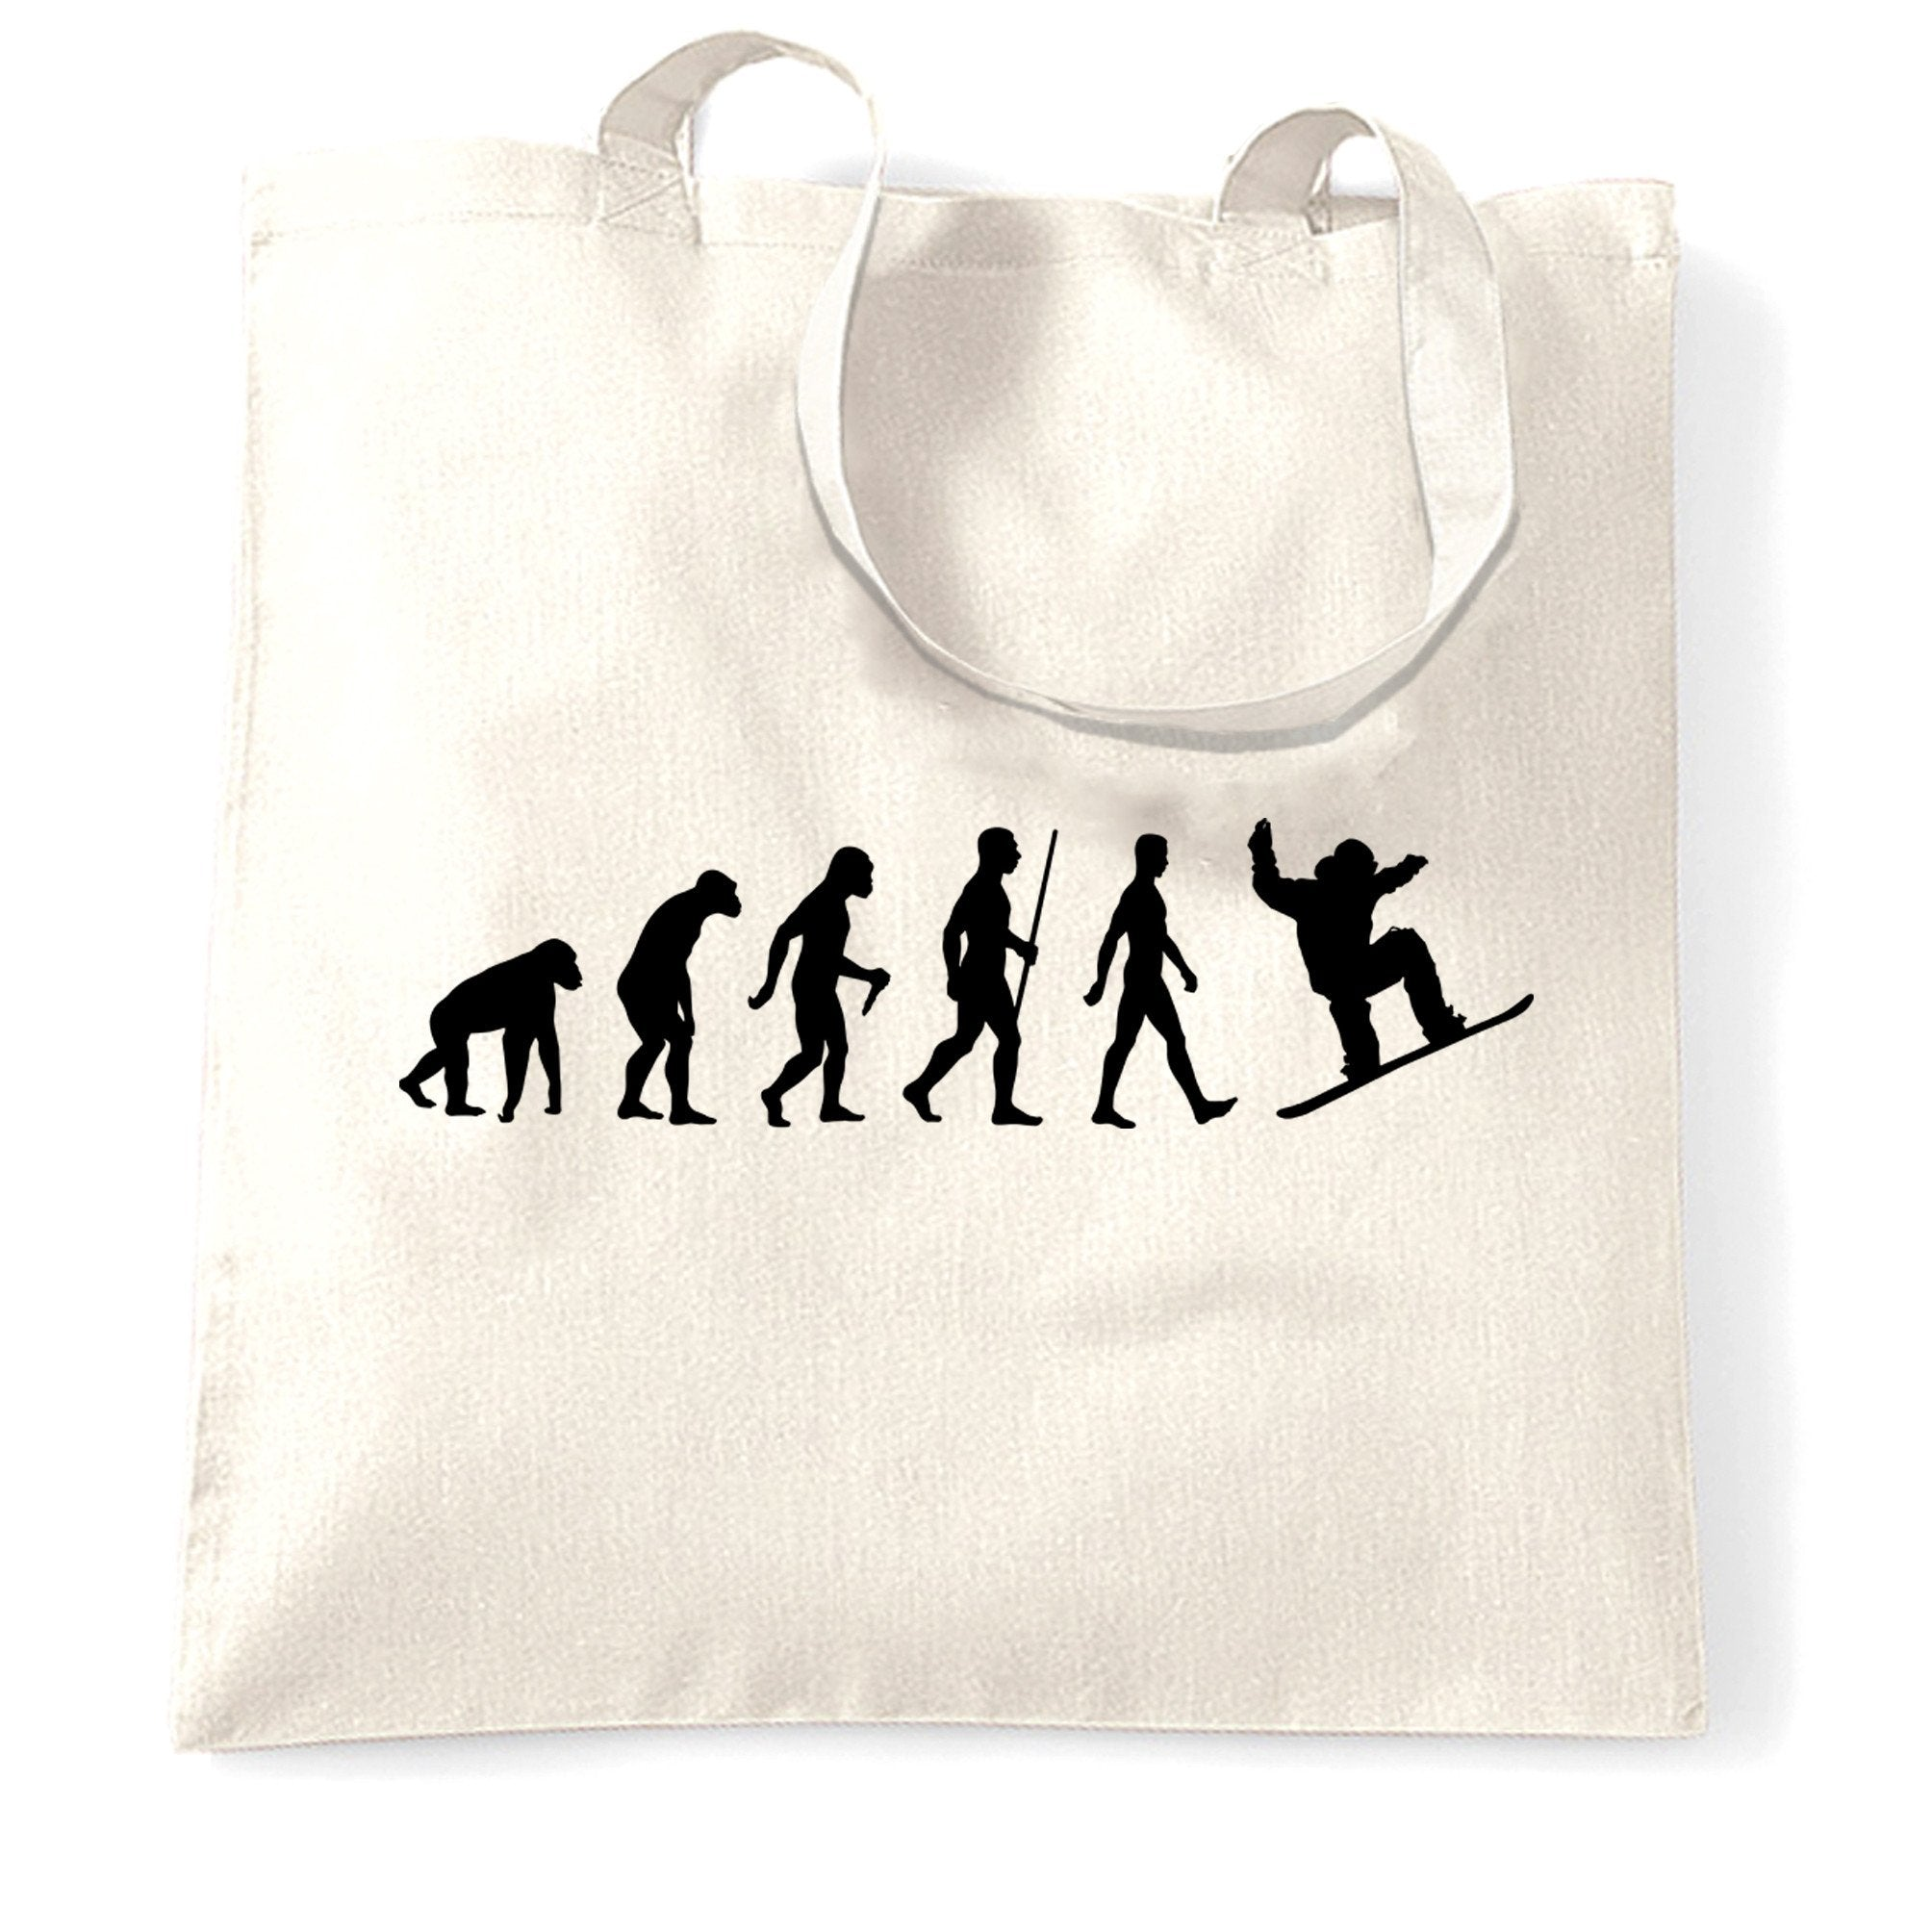 Sports Tote Bag The Evolution Of A Snowboarder